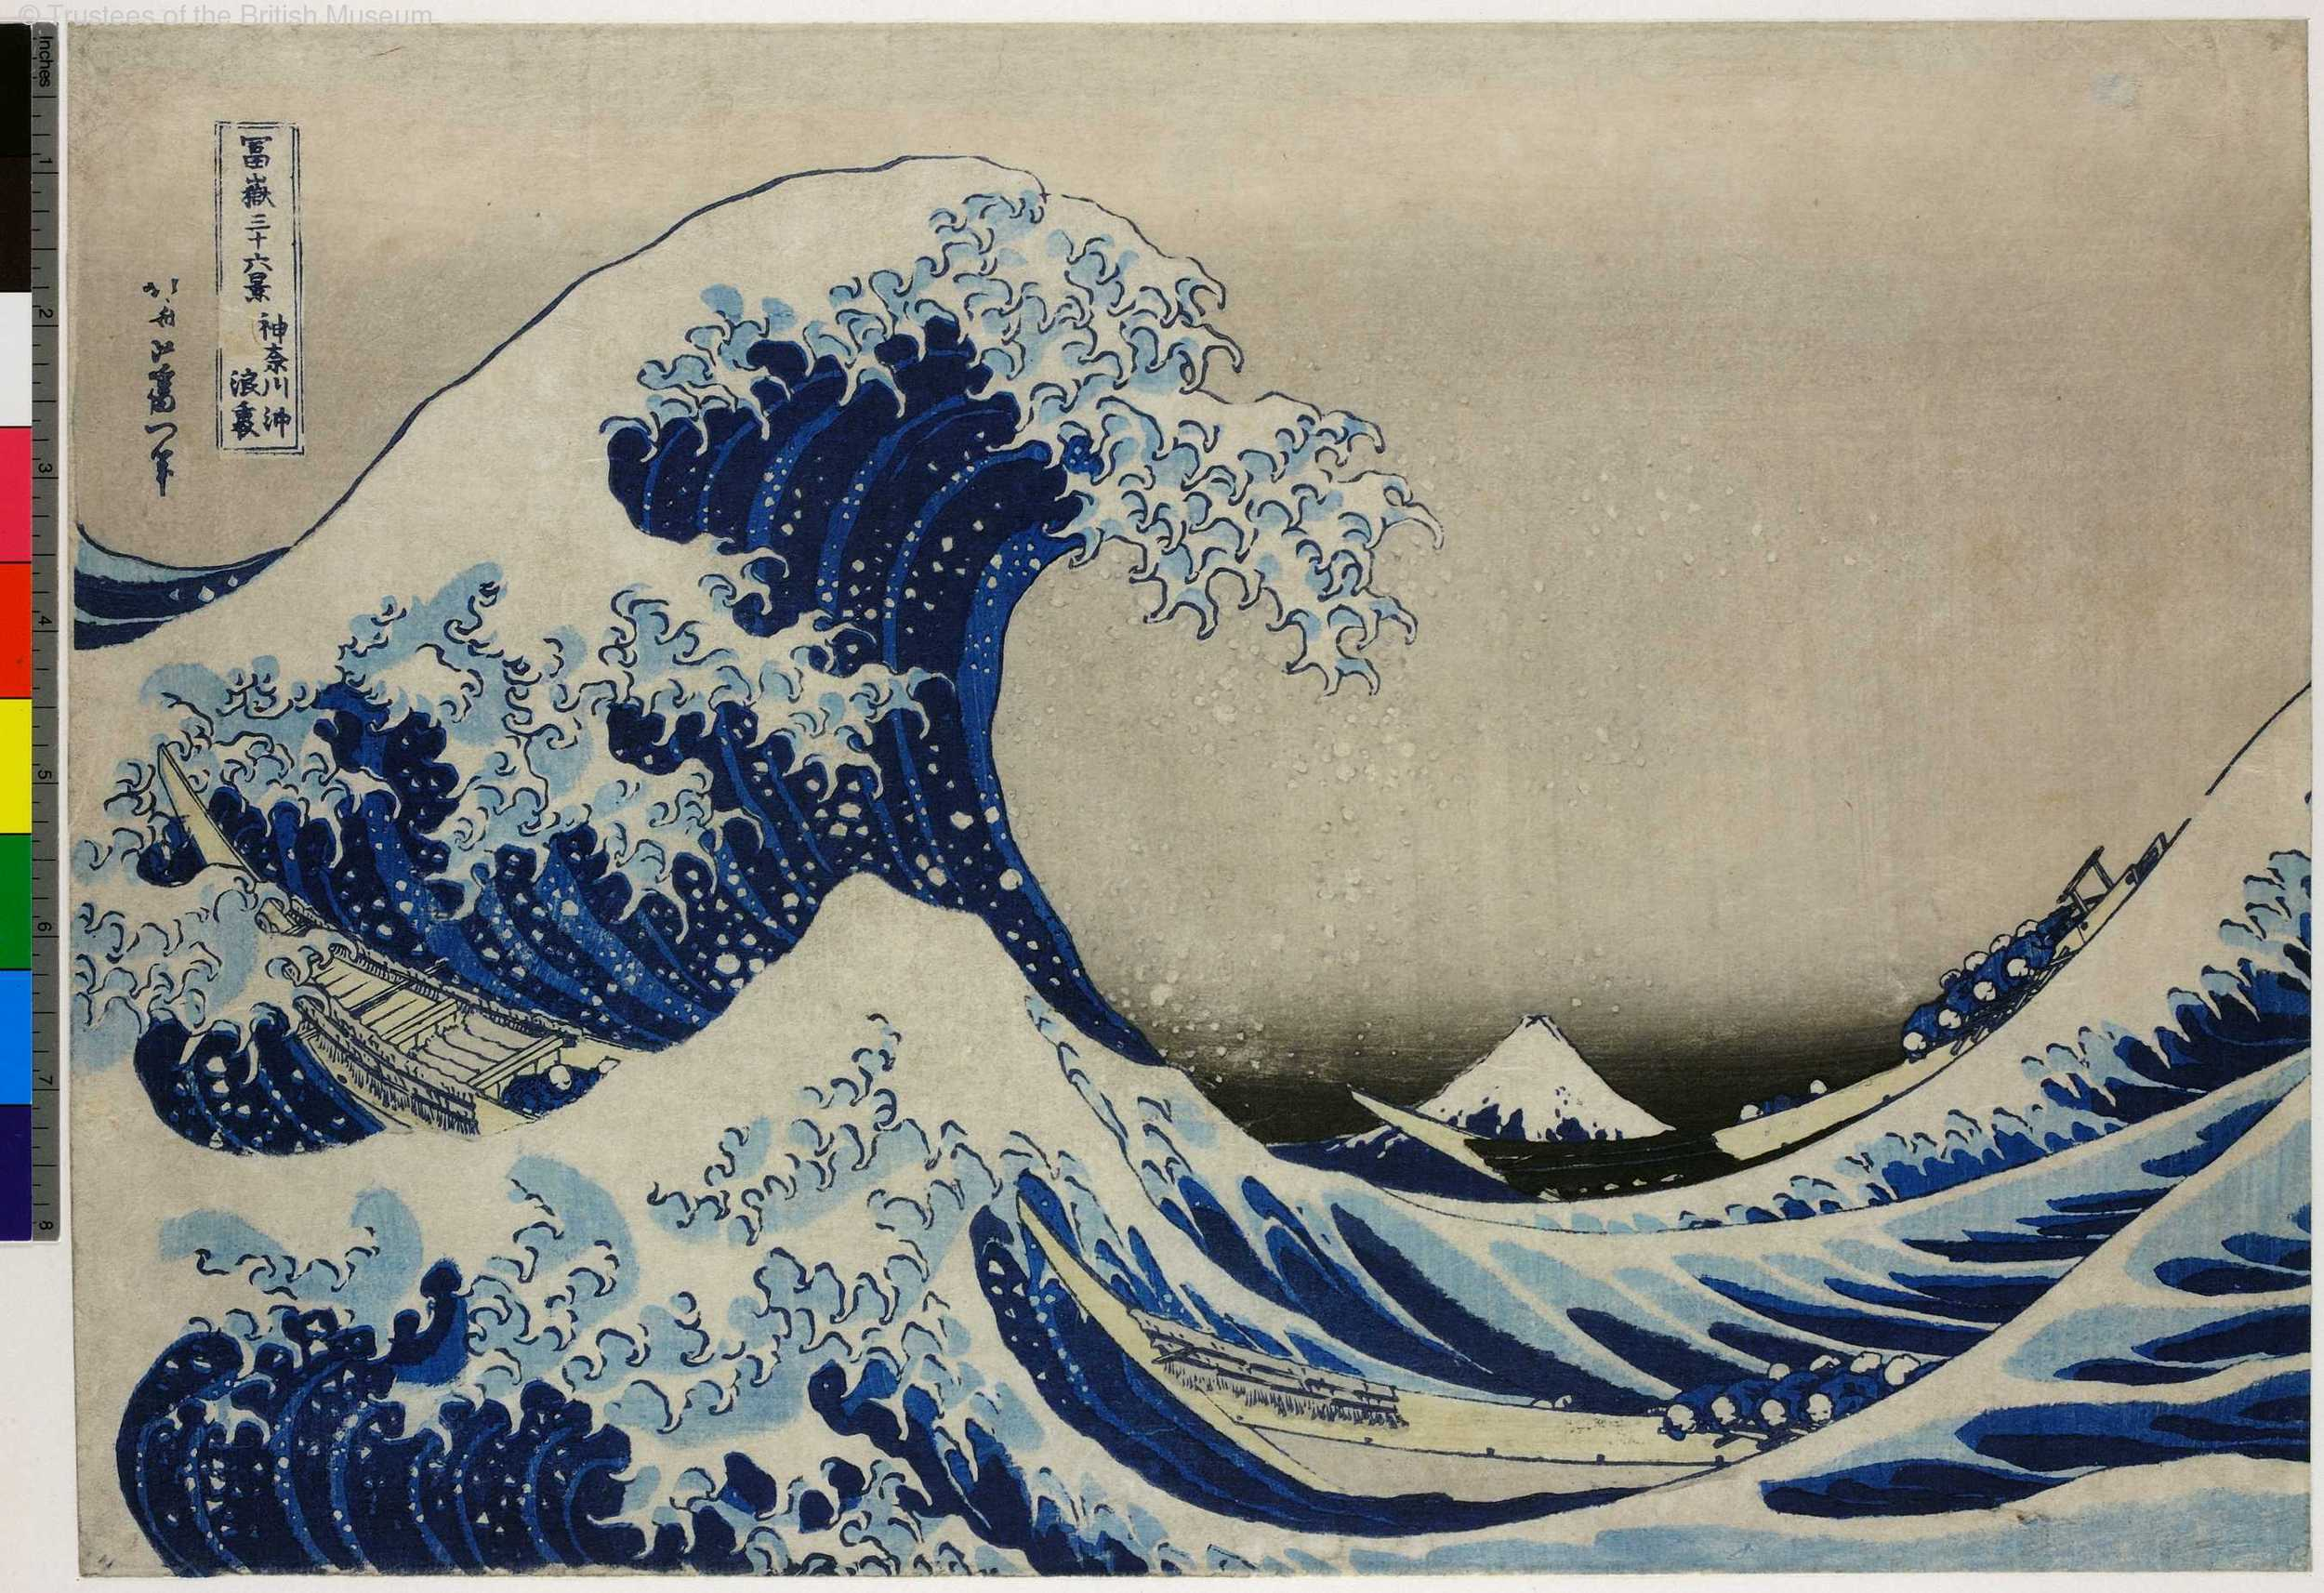 Late Hokusai: Thought, Technique, Society  (Database)